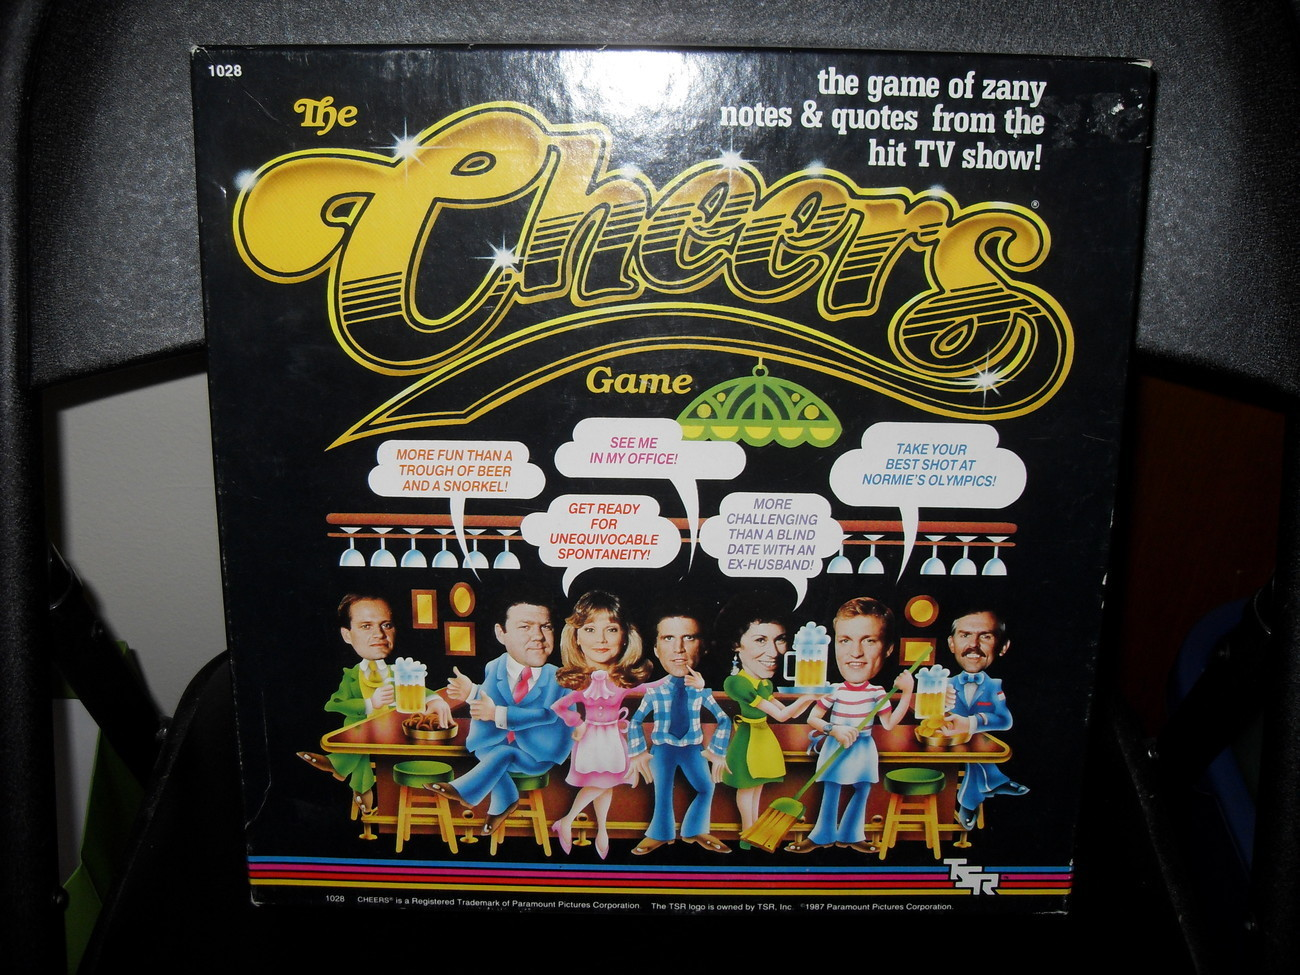 1987  Cheers Game